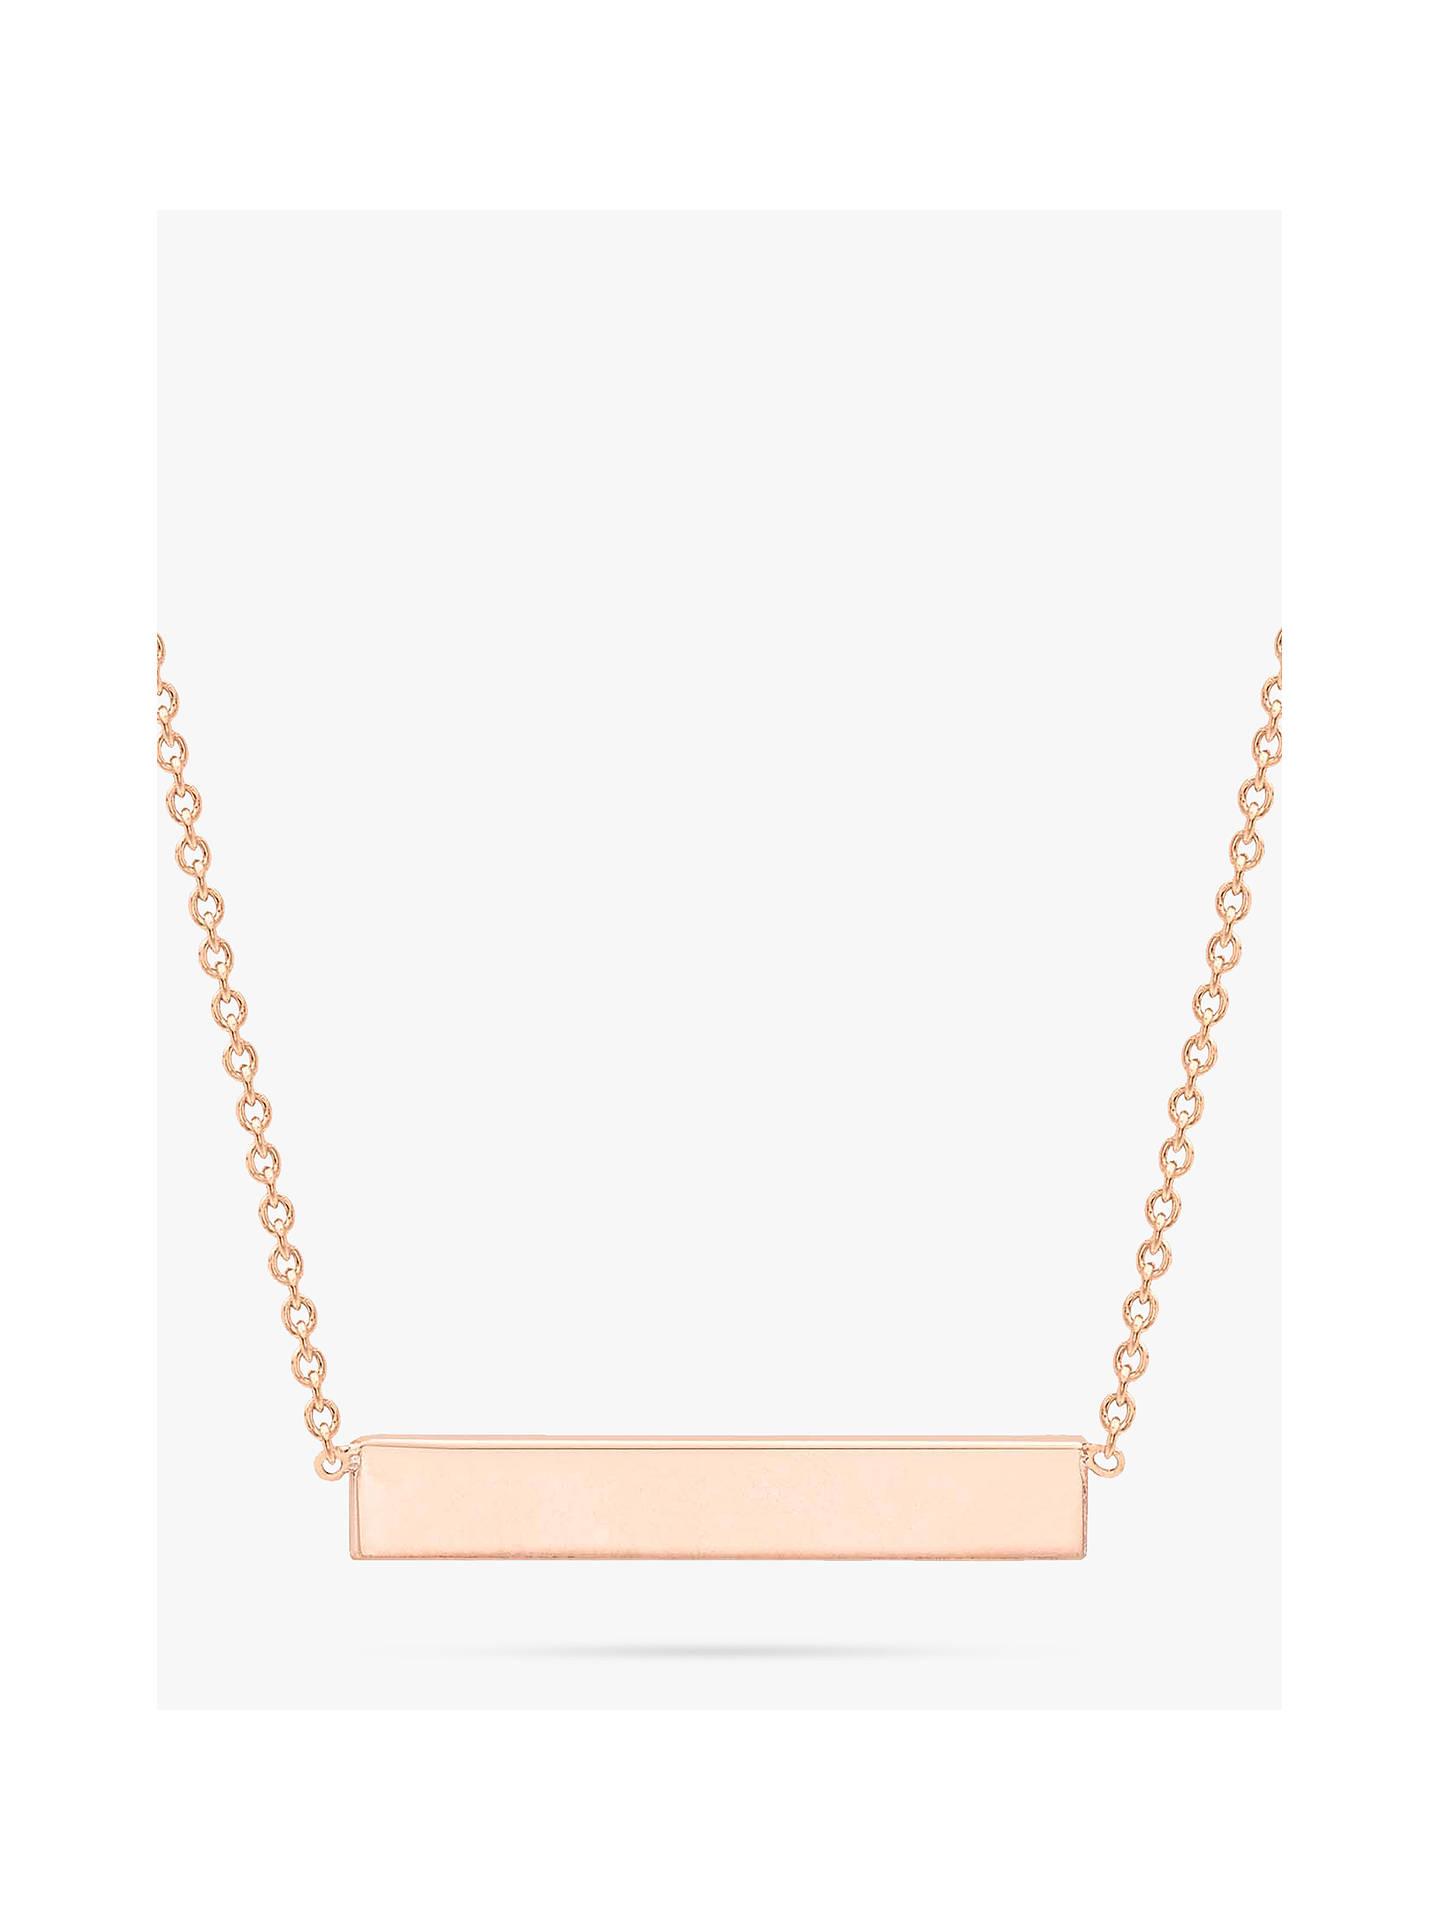 BuyIBB Personalised 9ct Gold Horizontal Bar Initial Pendant Necklace, Rose Gold Online at johnlewis.com